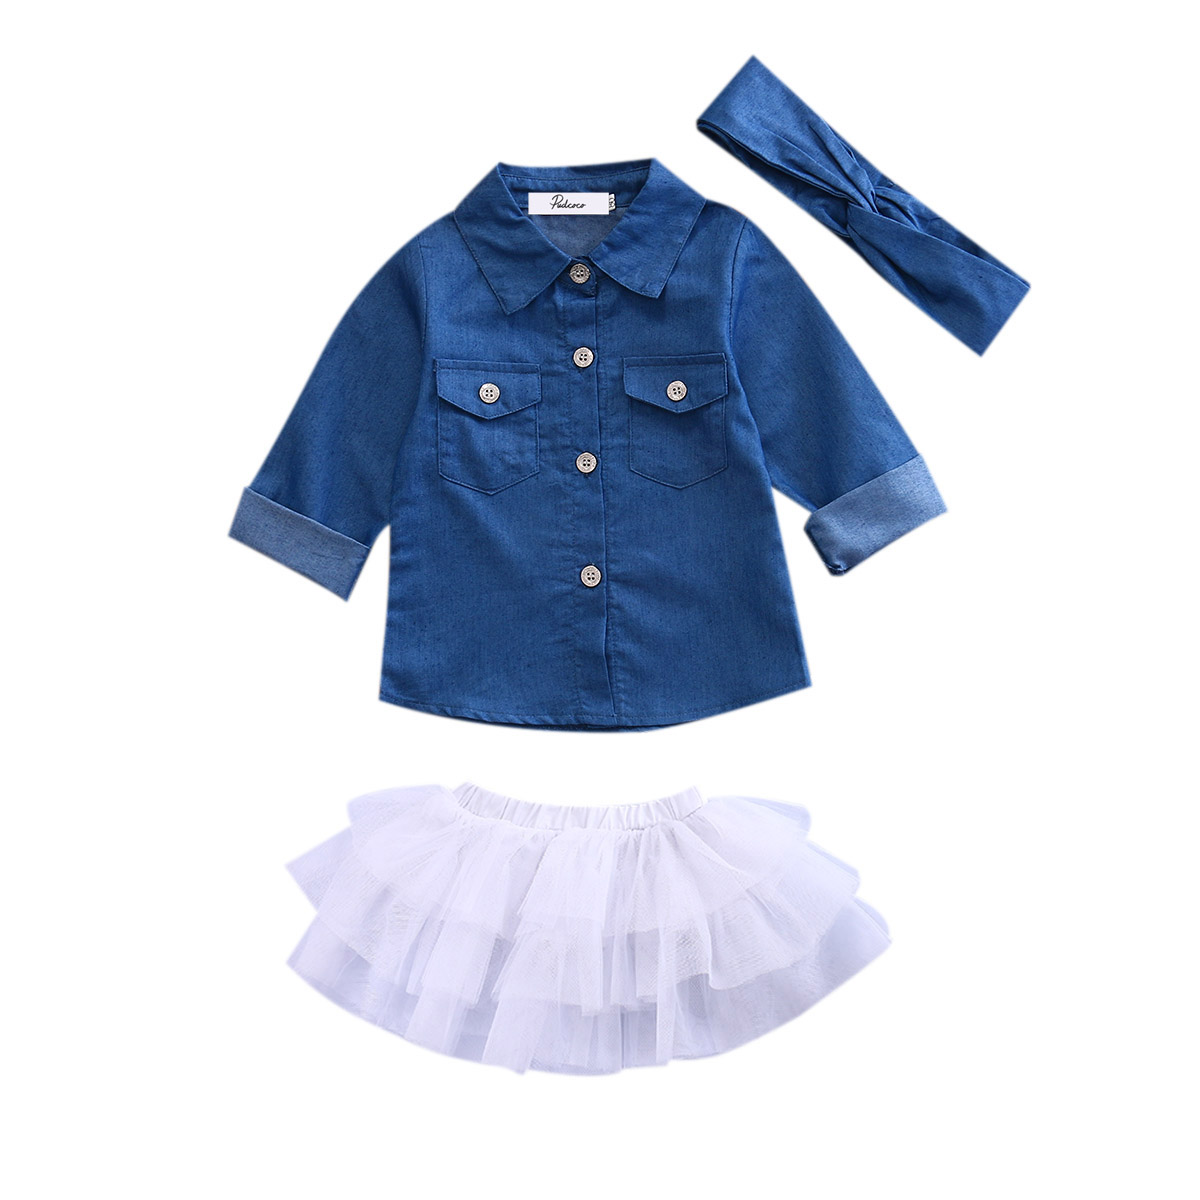 2017 Summer New Kids Baby Girls Denim Tops Shirt+Tutu Skirts Dress Headband 3pcs Outfits Set 3pcs outfit infantil girls clothes toddler baby girl plaid ruffled tops kids girls denim shorts cute headband summer outfits set